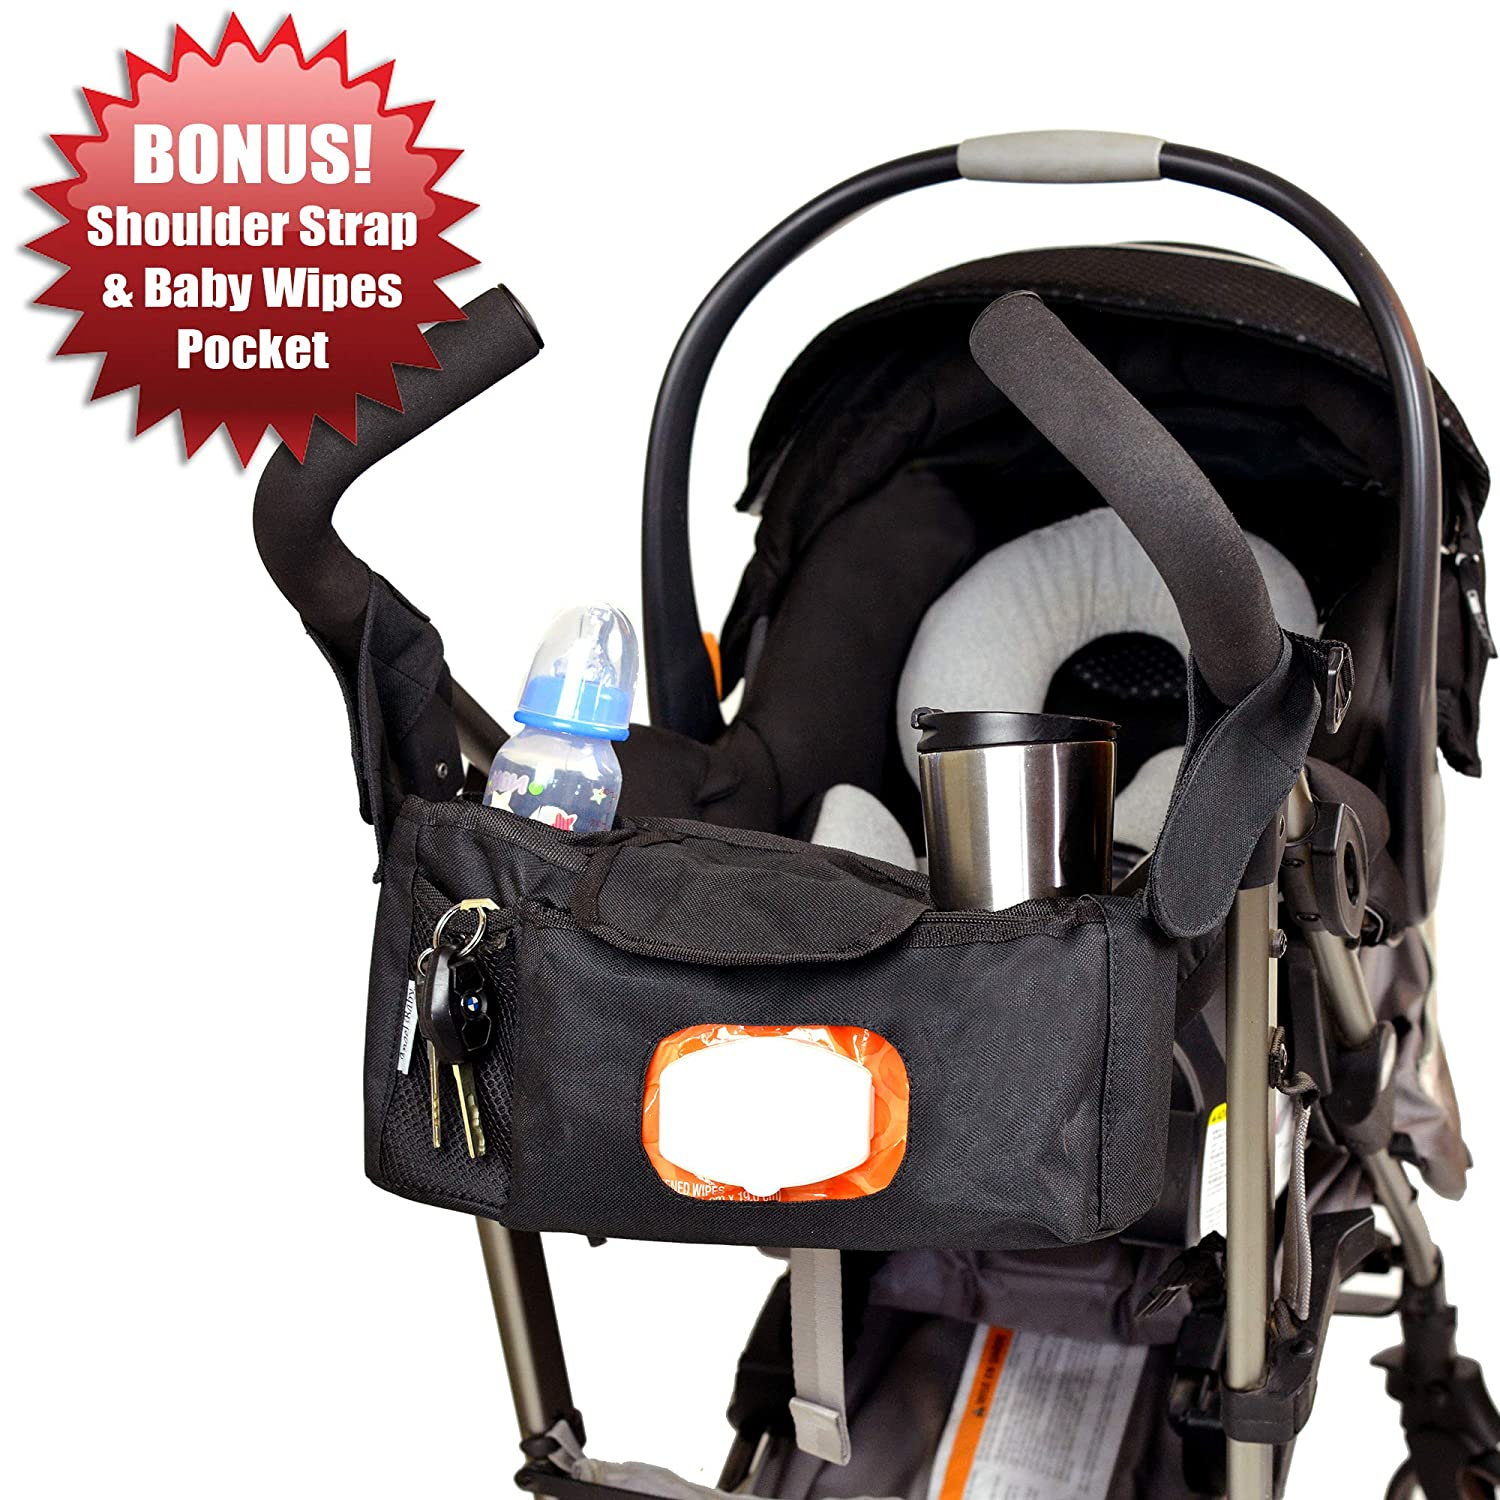 Angel Baby Premium Stroller Organizer with Cup Holders (Double Insulated), Easy Access wipes Pockets, Large Storage Accessories Bag for Moms. Angel Direct Products AB-STORG